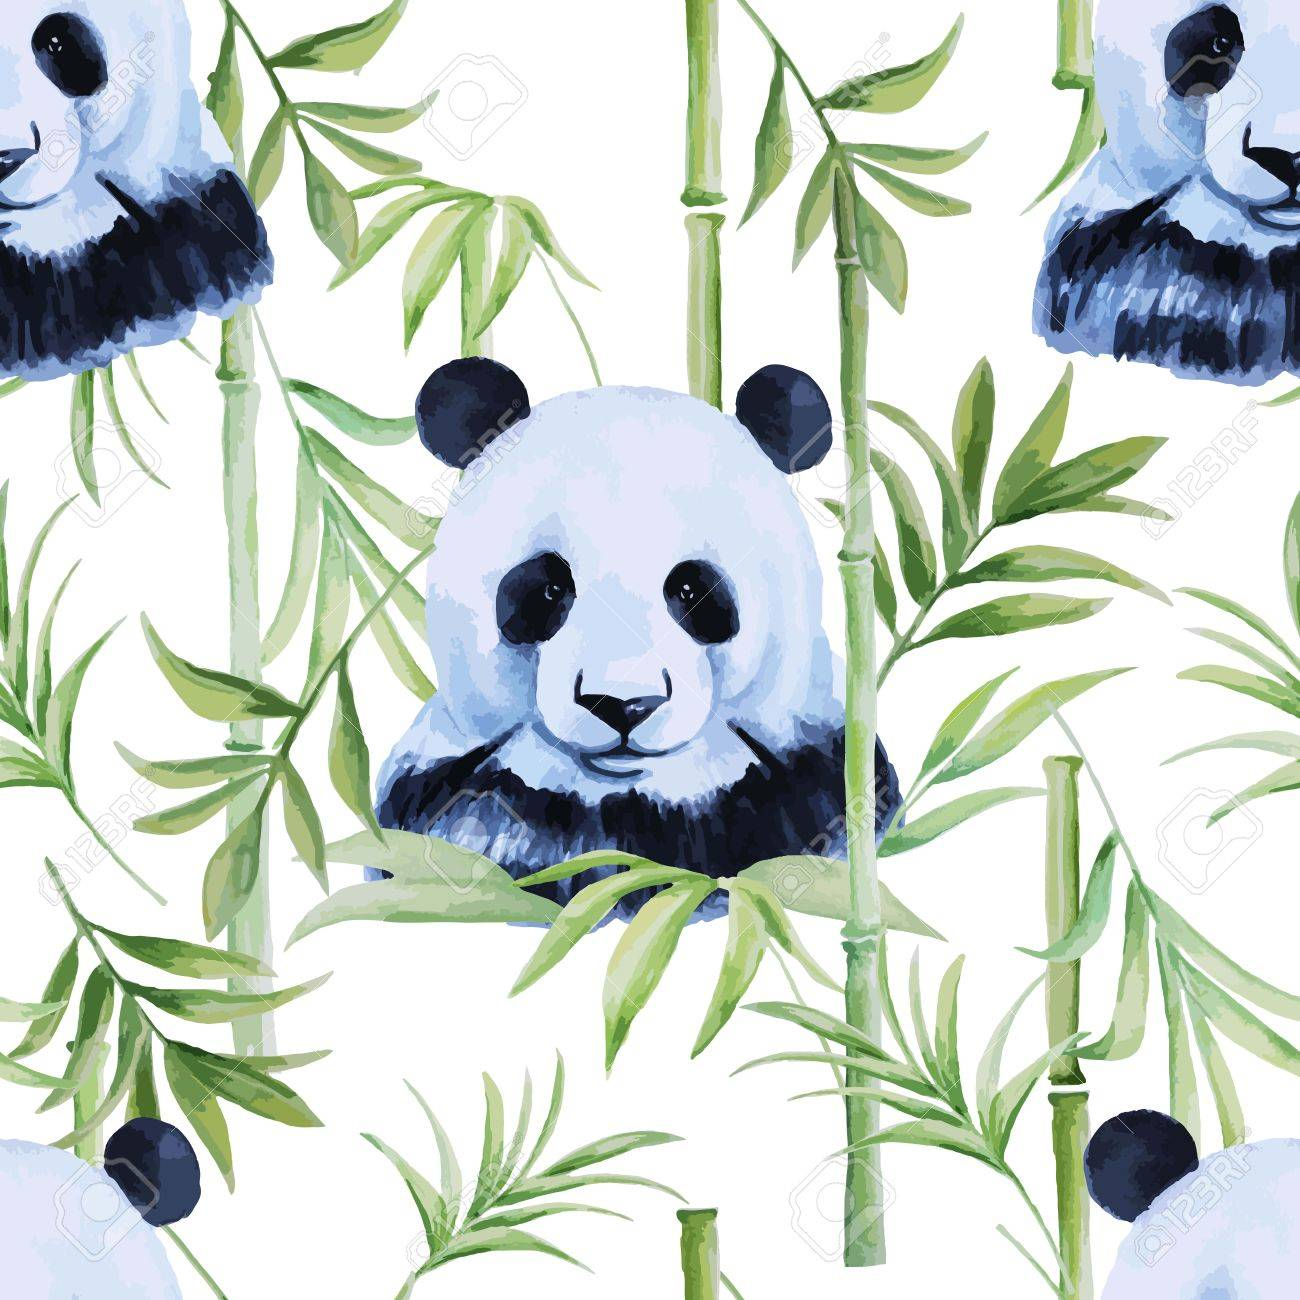 Panda, bamboo seamless pattern for different projects. - 51523050